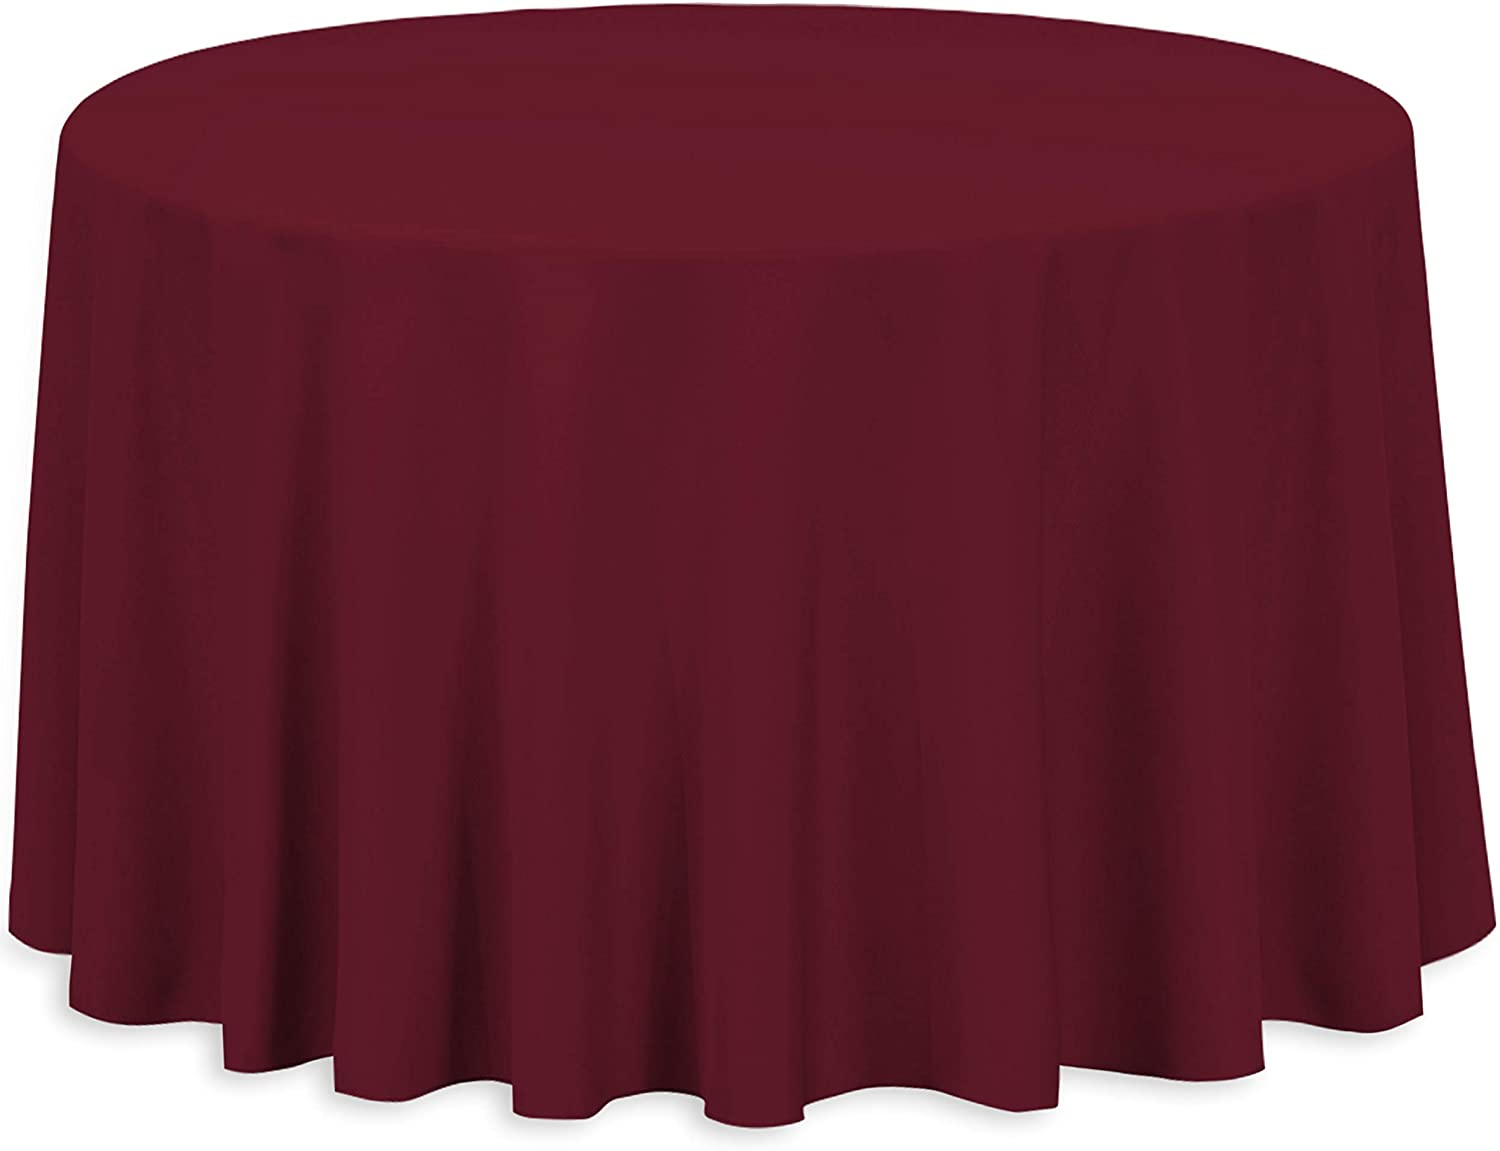 Thanksgiving Tablecloth | 100% Cotton Everyday Quality Table Cloth Great for Buffet Table, Parties, Holiday Dinner, Wedding & More | Round Tablecloth ( 108-Inch Round, Burgundy)